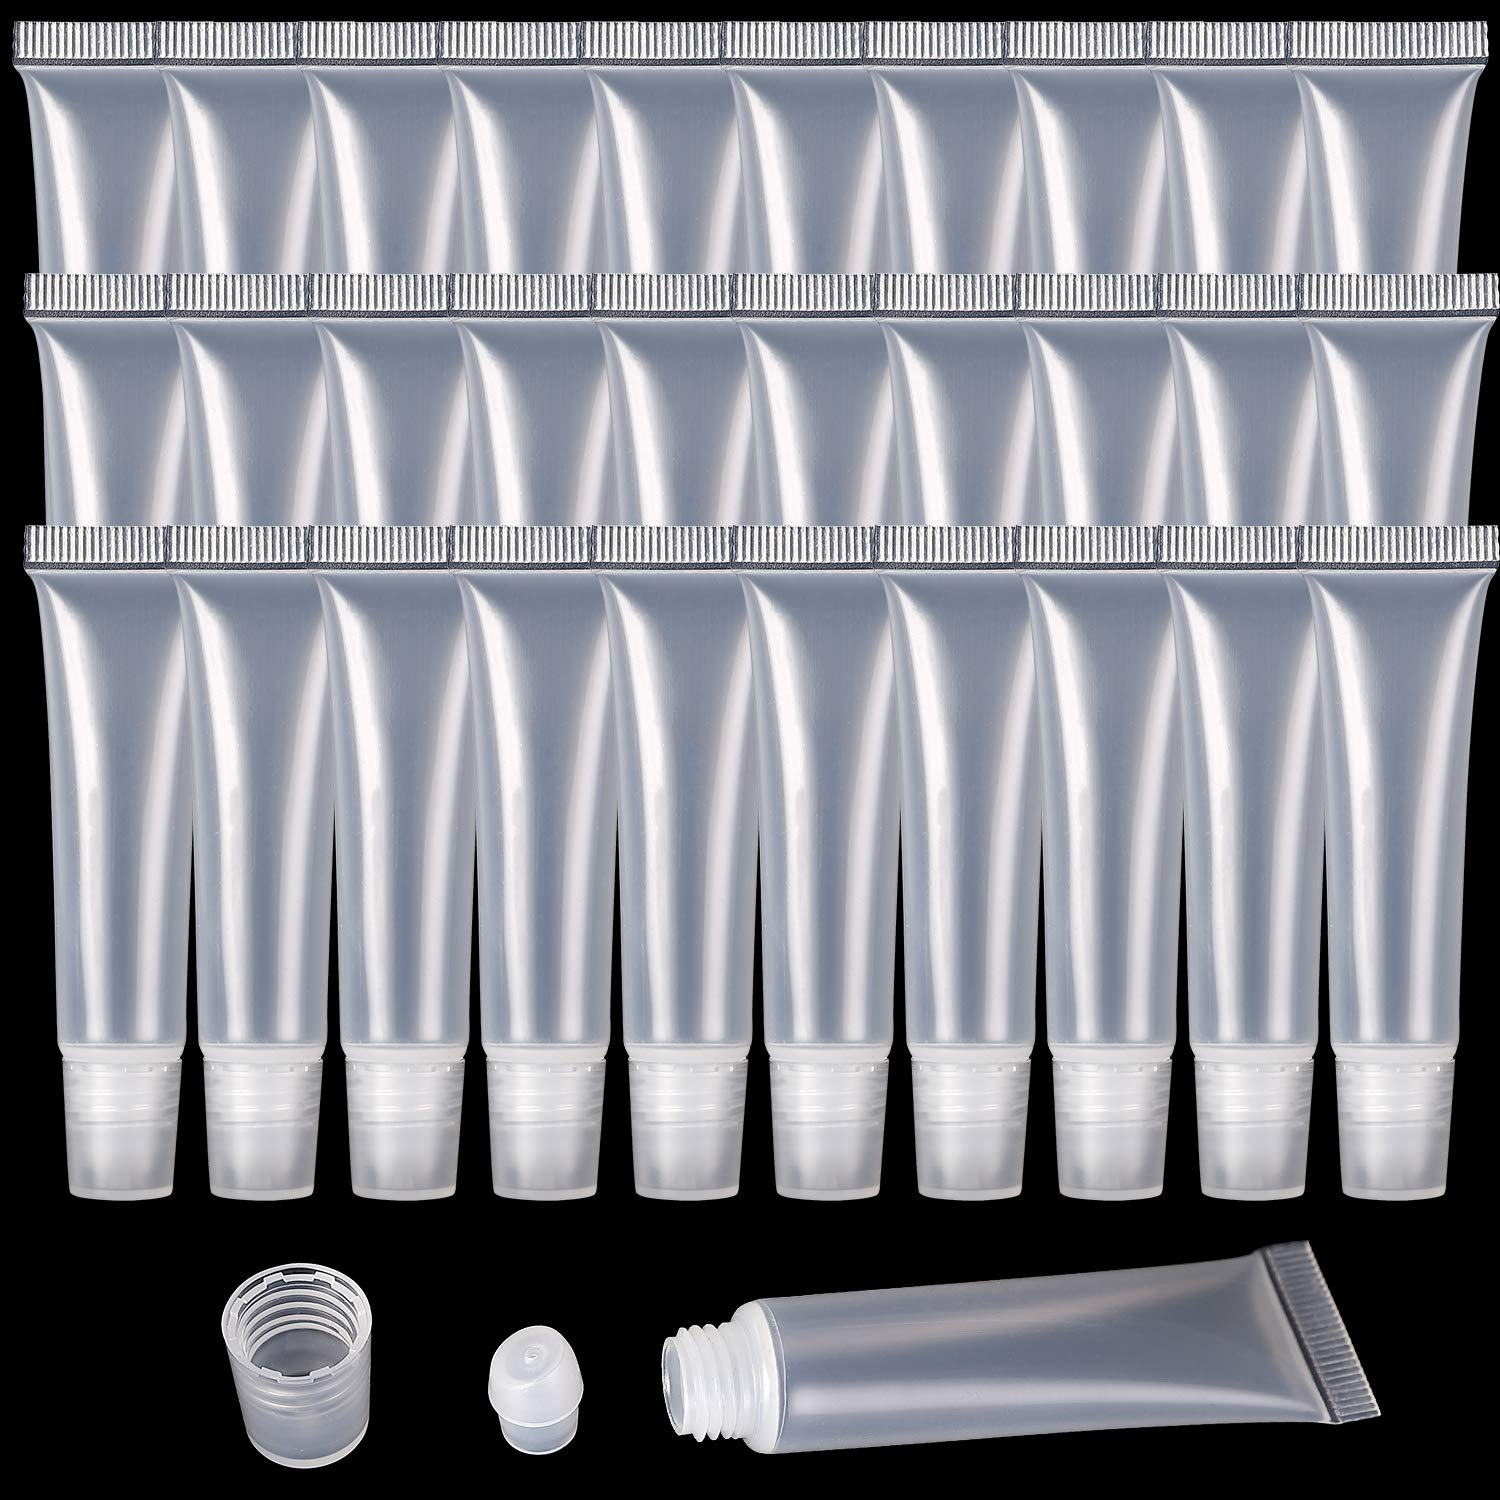 100 Pcs 10 ml Lip Gloss Balm Tubes Refillable Empty Tubes Clear Cosmetic Containers Soft Tube. (10ML)